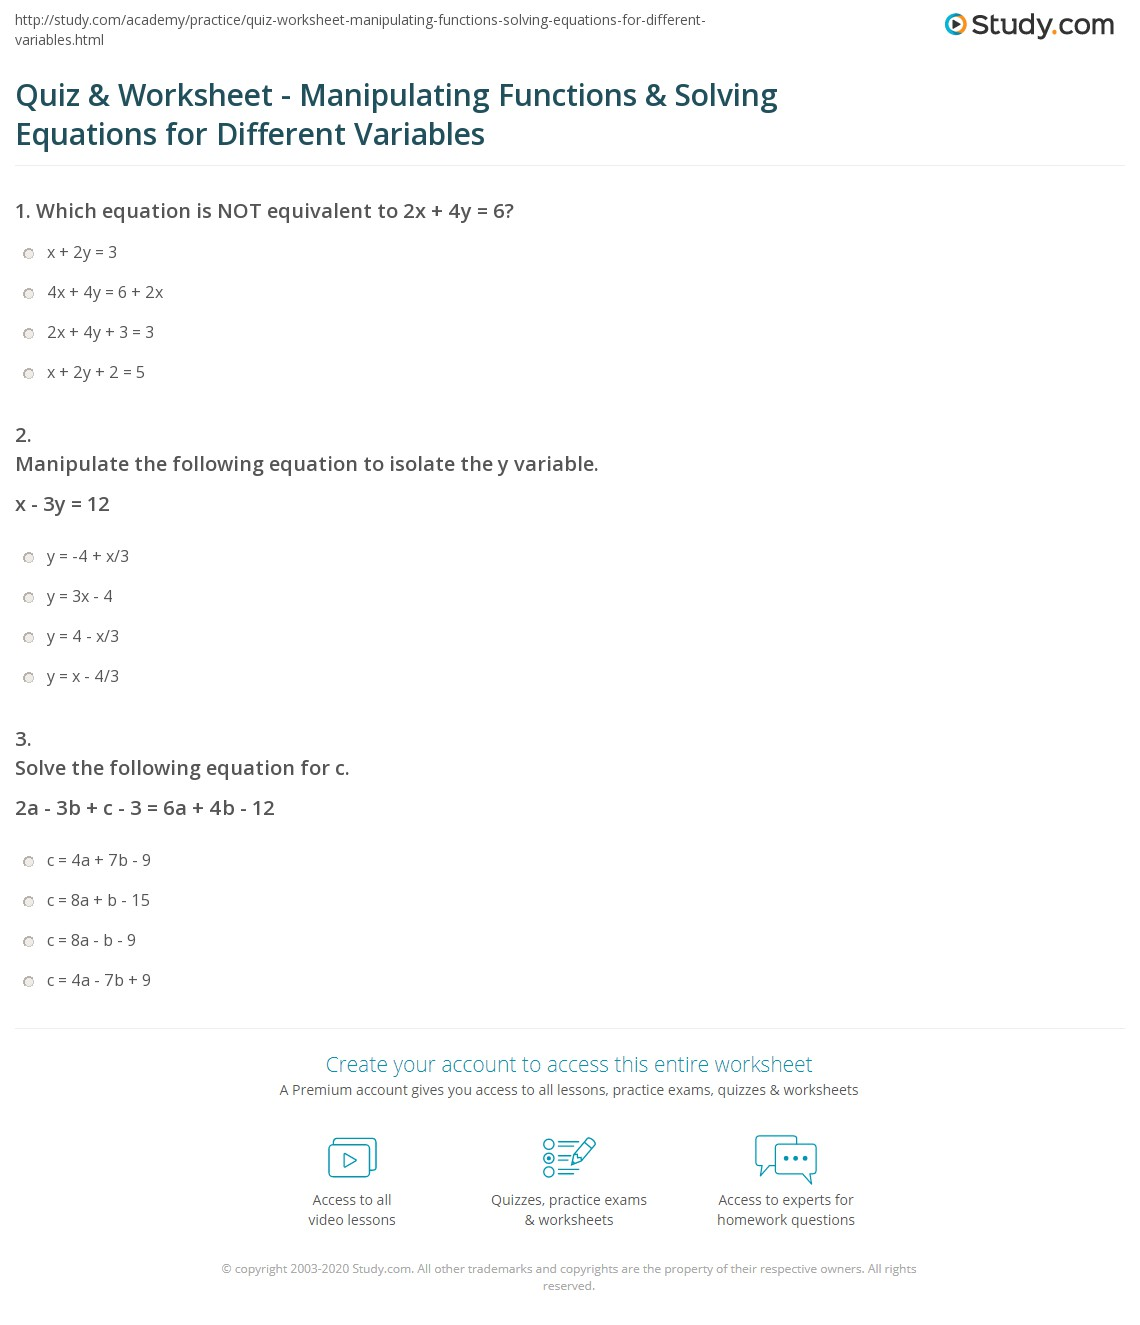 Practice 3 Equations With Variables On Both Sides